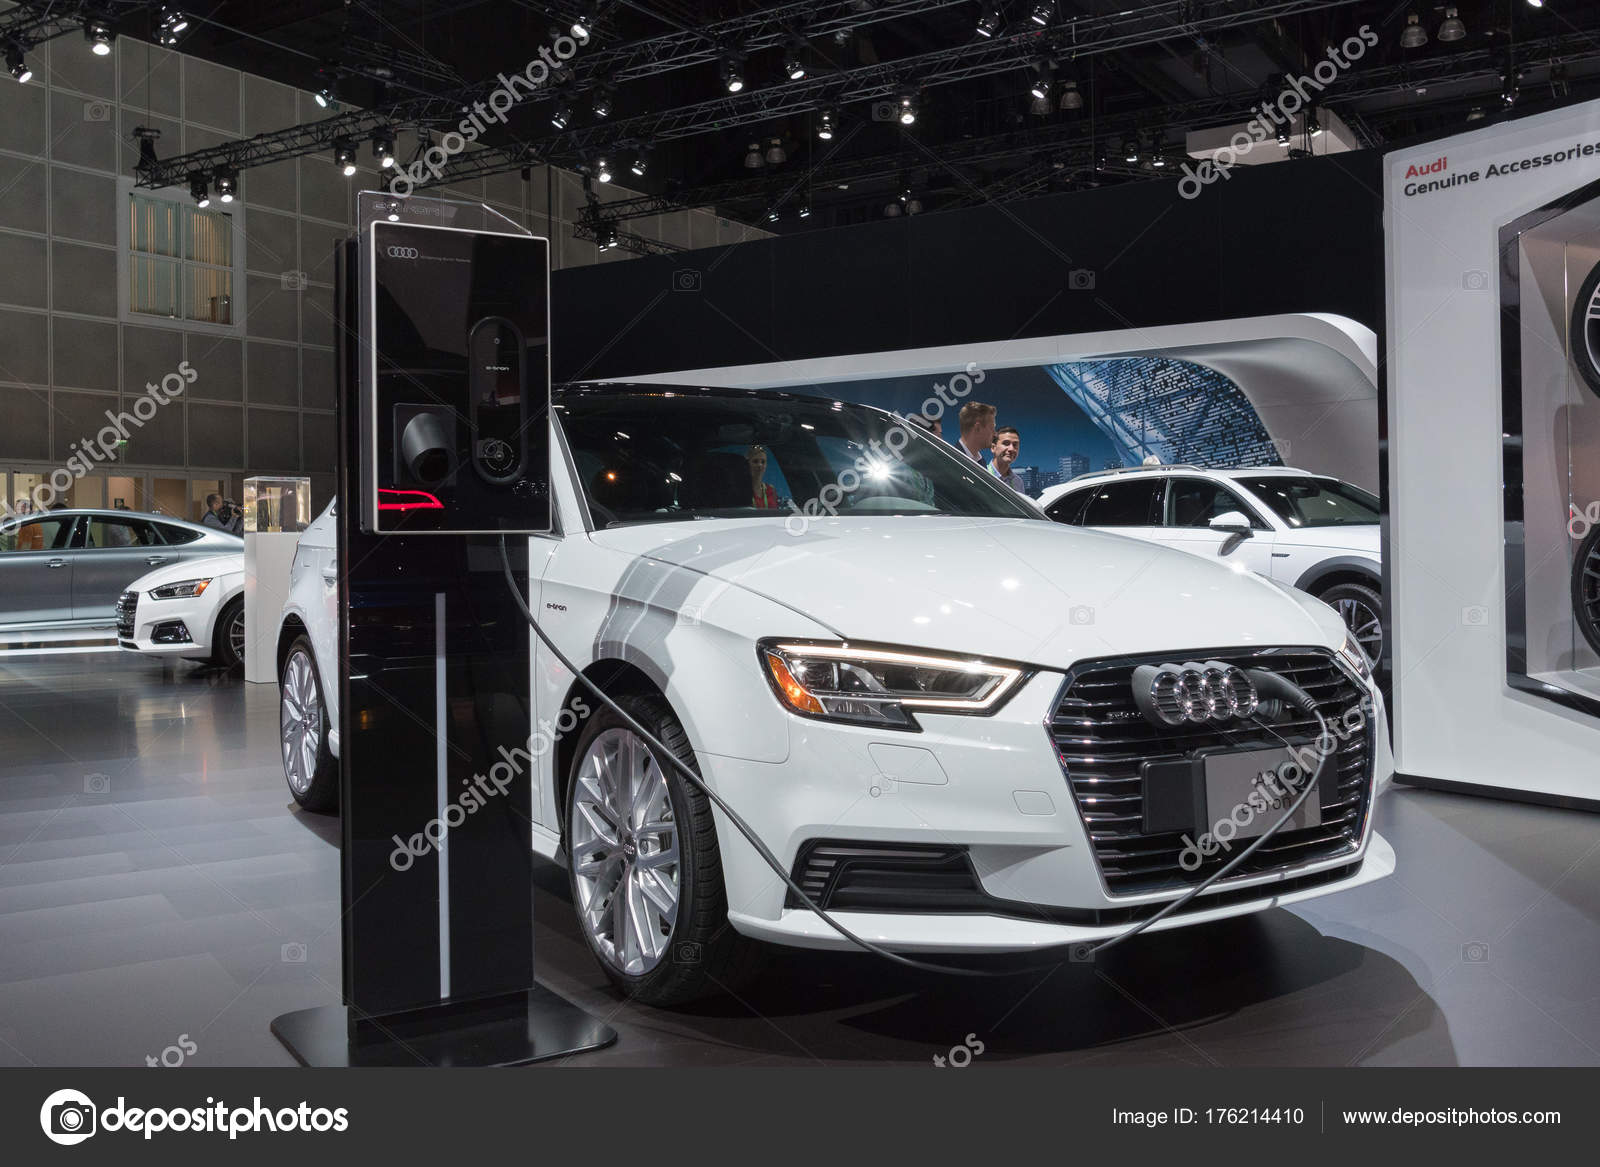 Audi A Etron On Display During LA Auto Show Stock Editorial - Car show display accessories